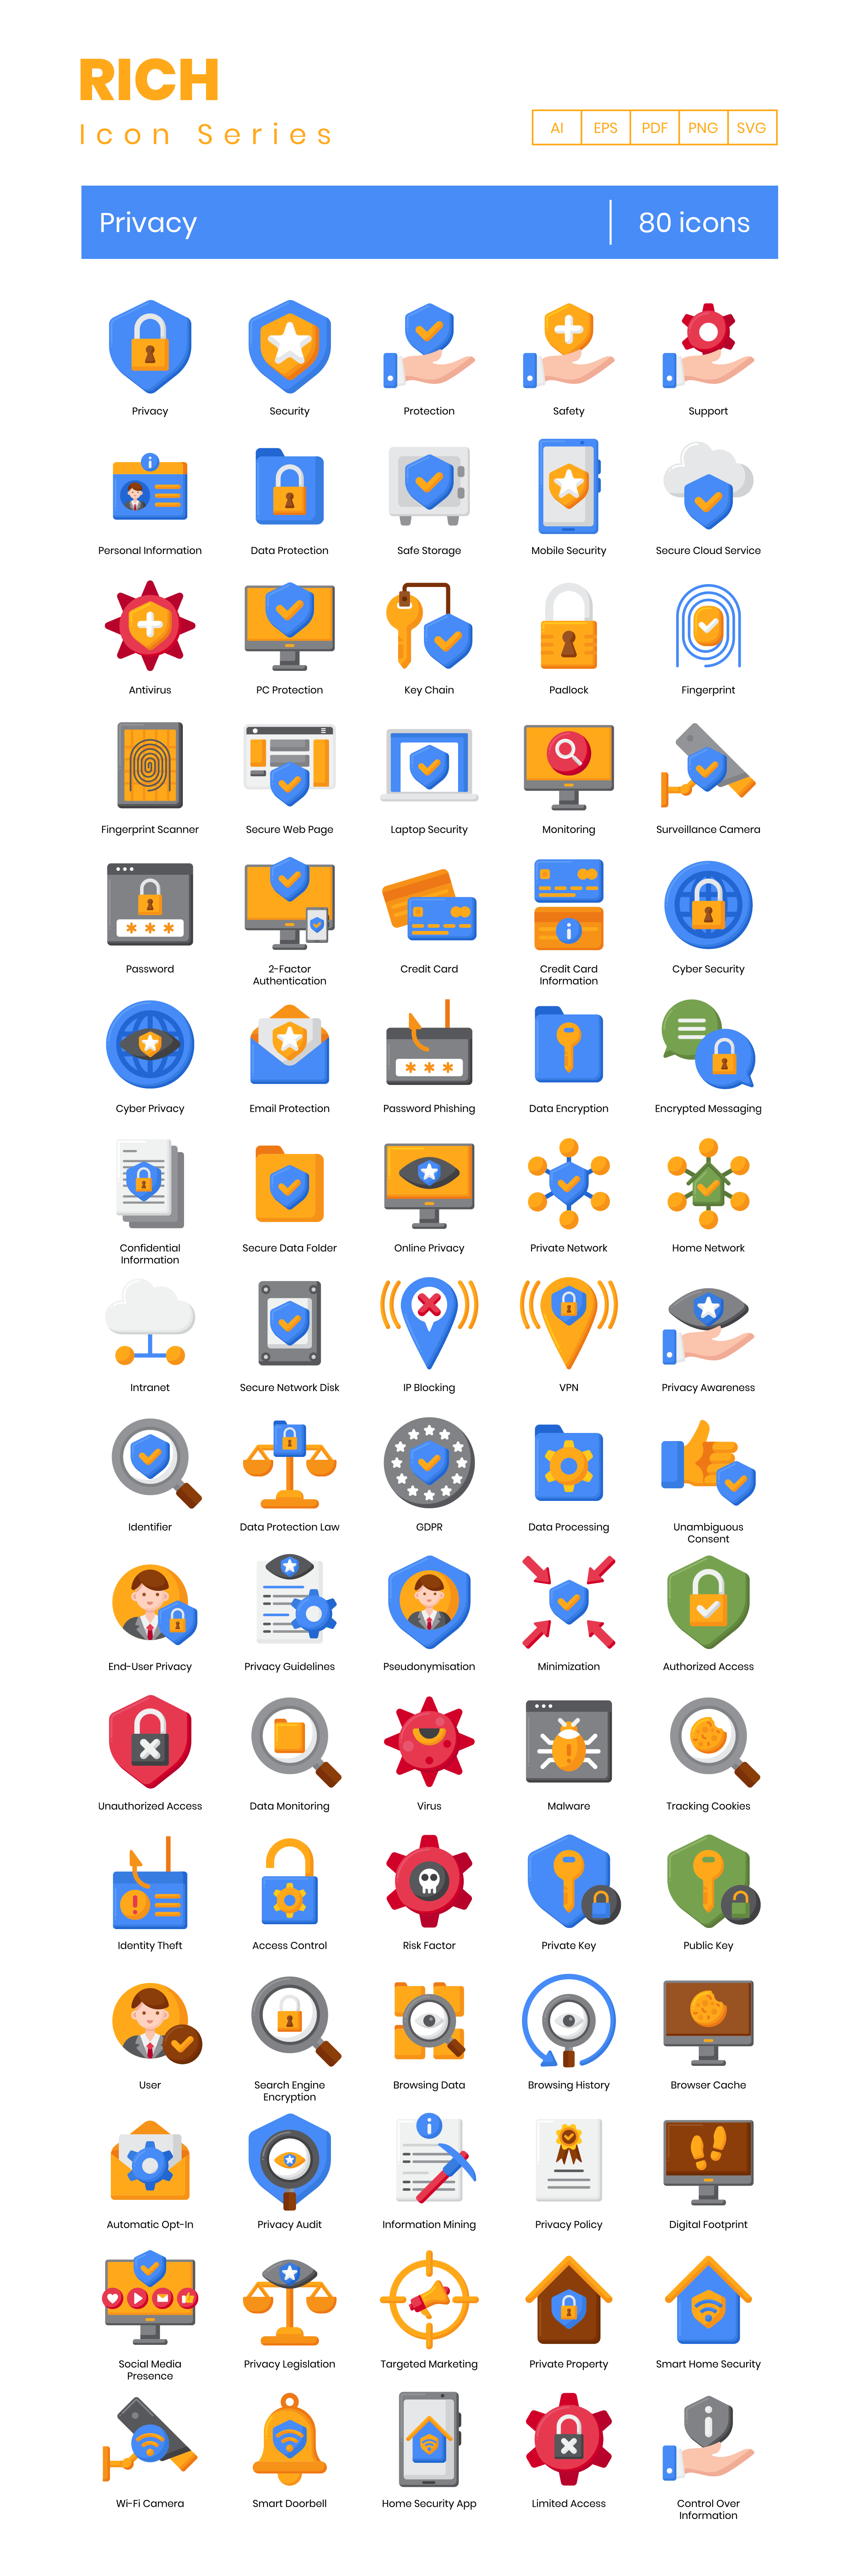 Privacy Vector Icons Preview Image